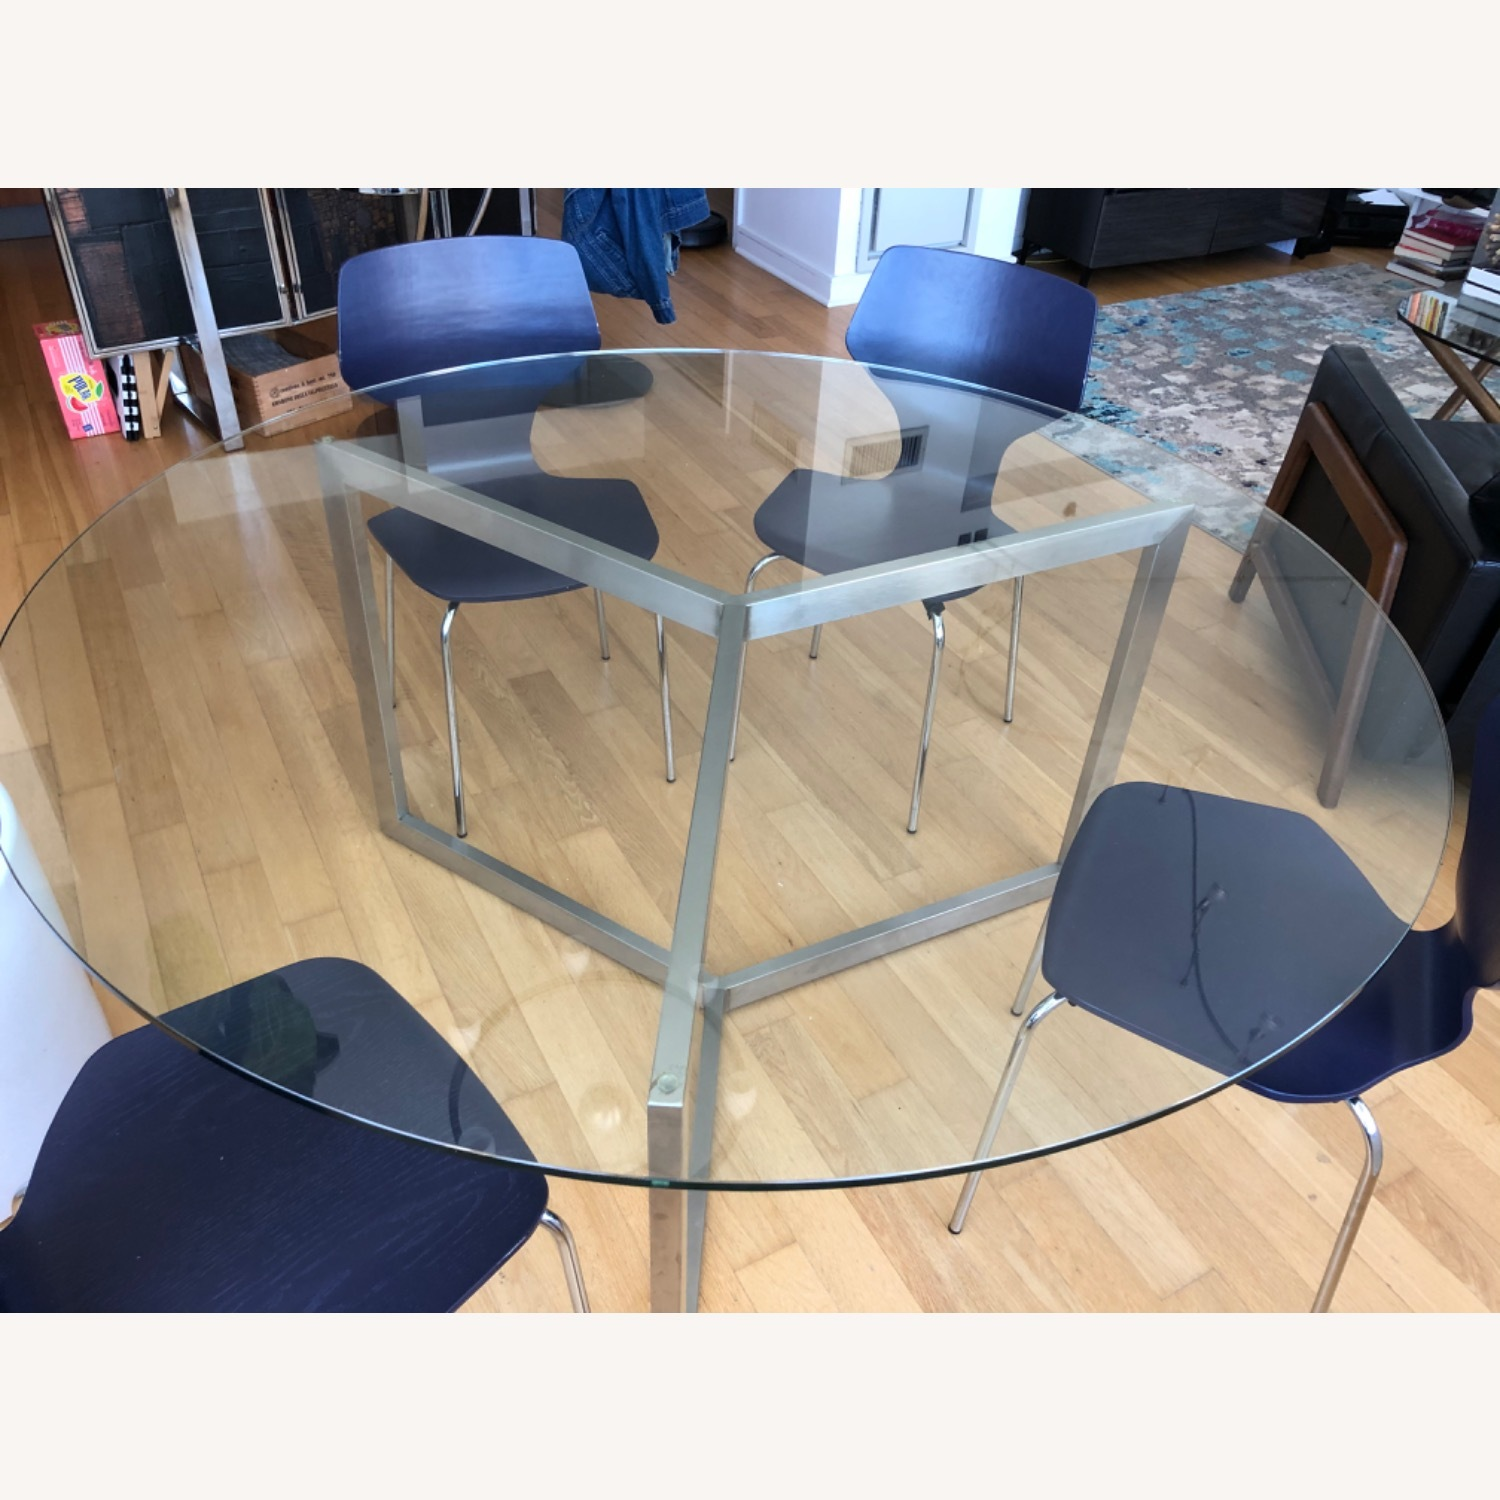 Room & Board Glass Dining Table - image-3